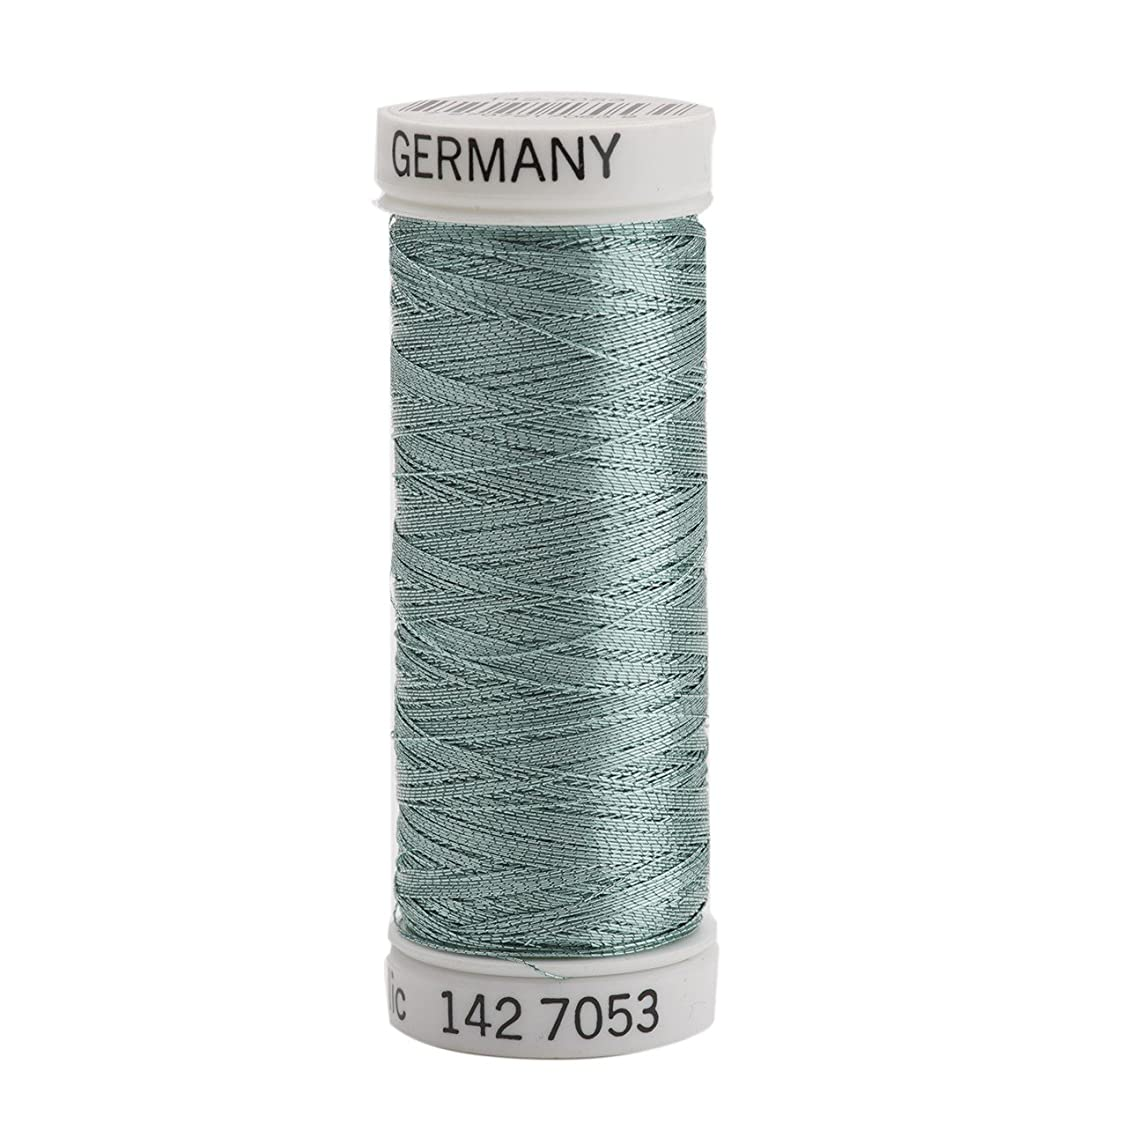 Sulky Metallic Thread for Sewing, Mint